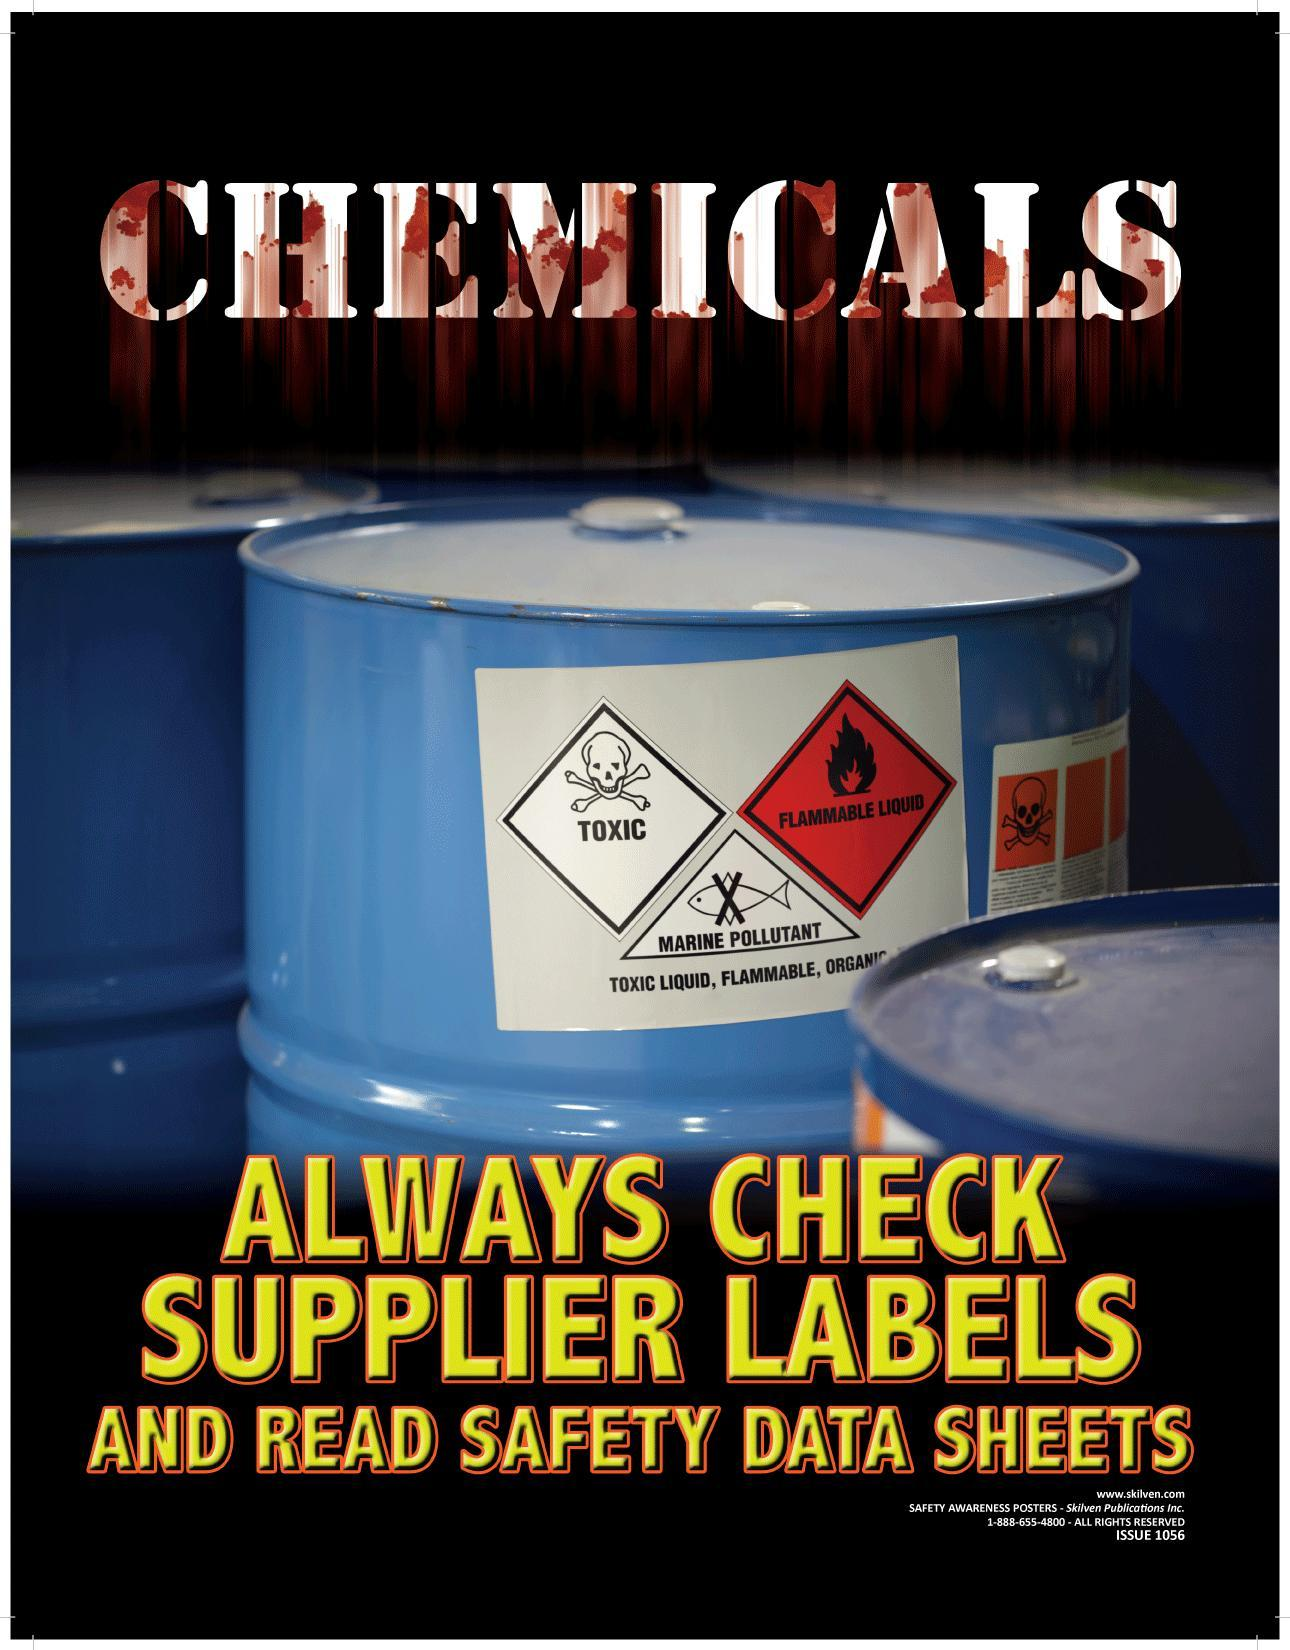 image reminding people to check chemical labels and the safety data sheet before using